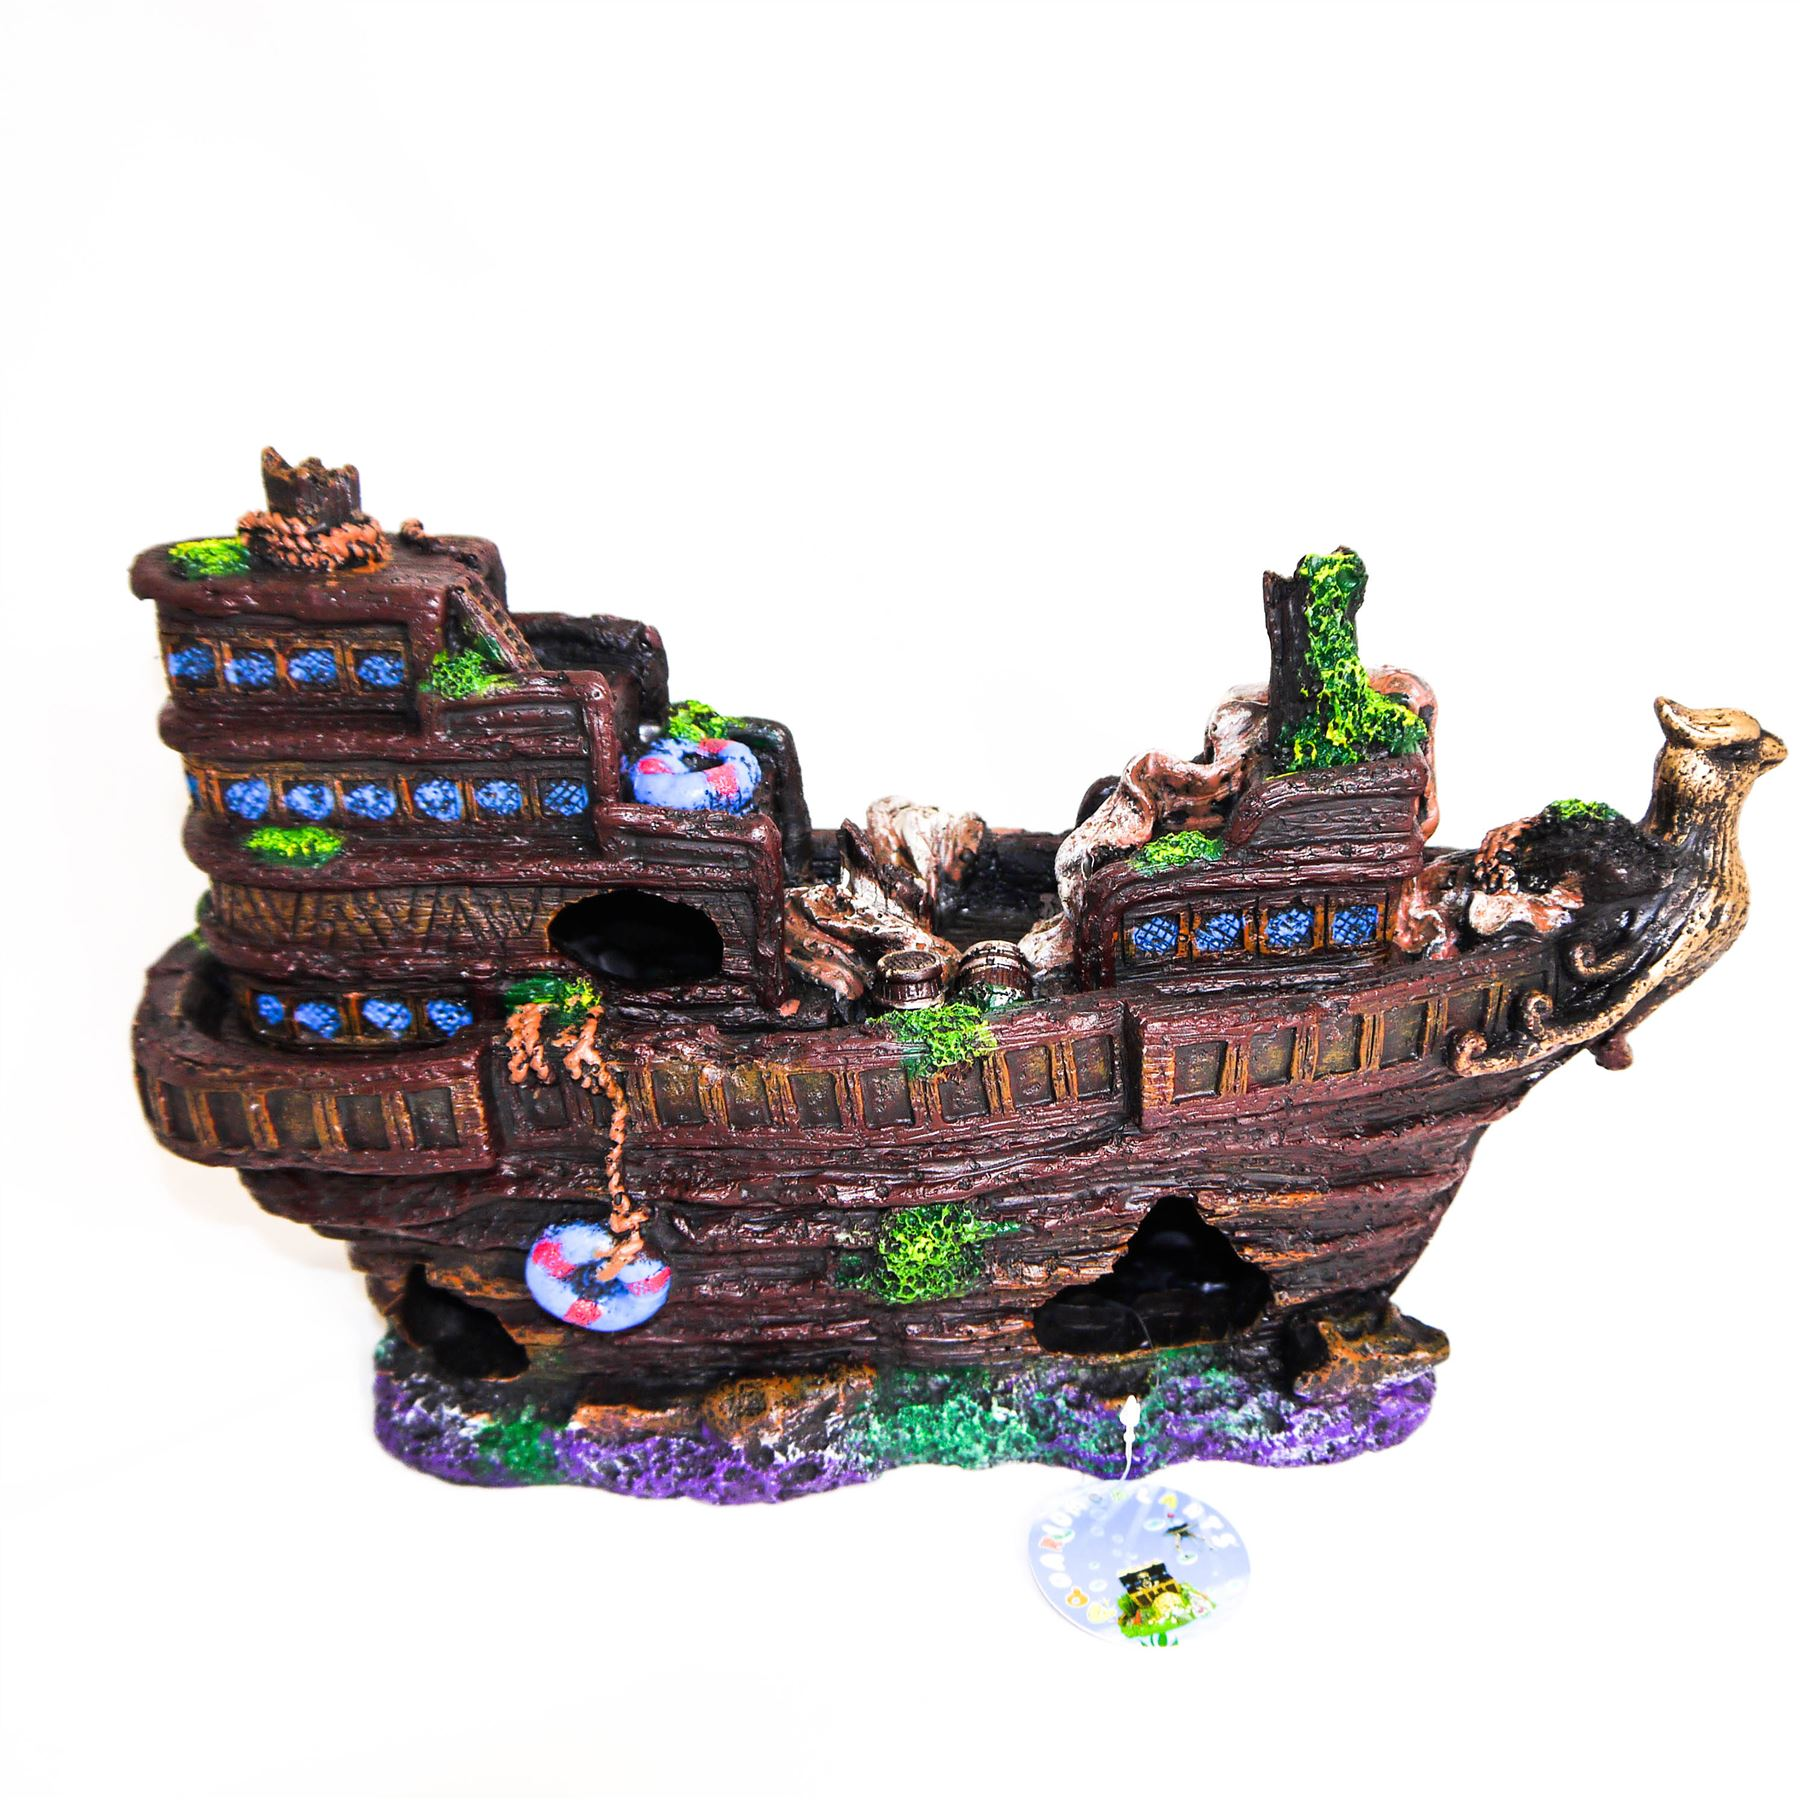 Large sunken galleon aquarium fish tank shipwreck for Aquarium decoration shipwreck